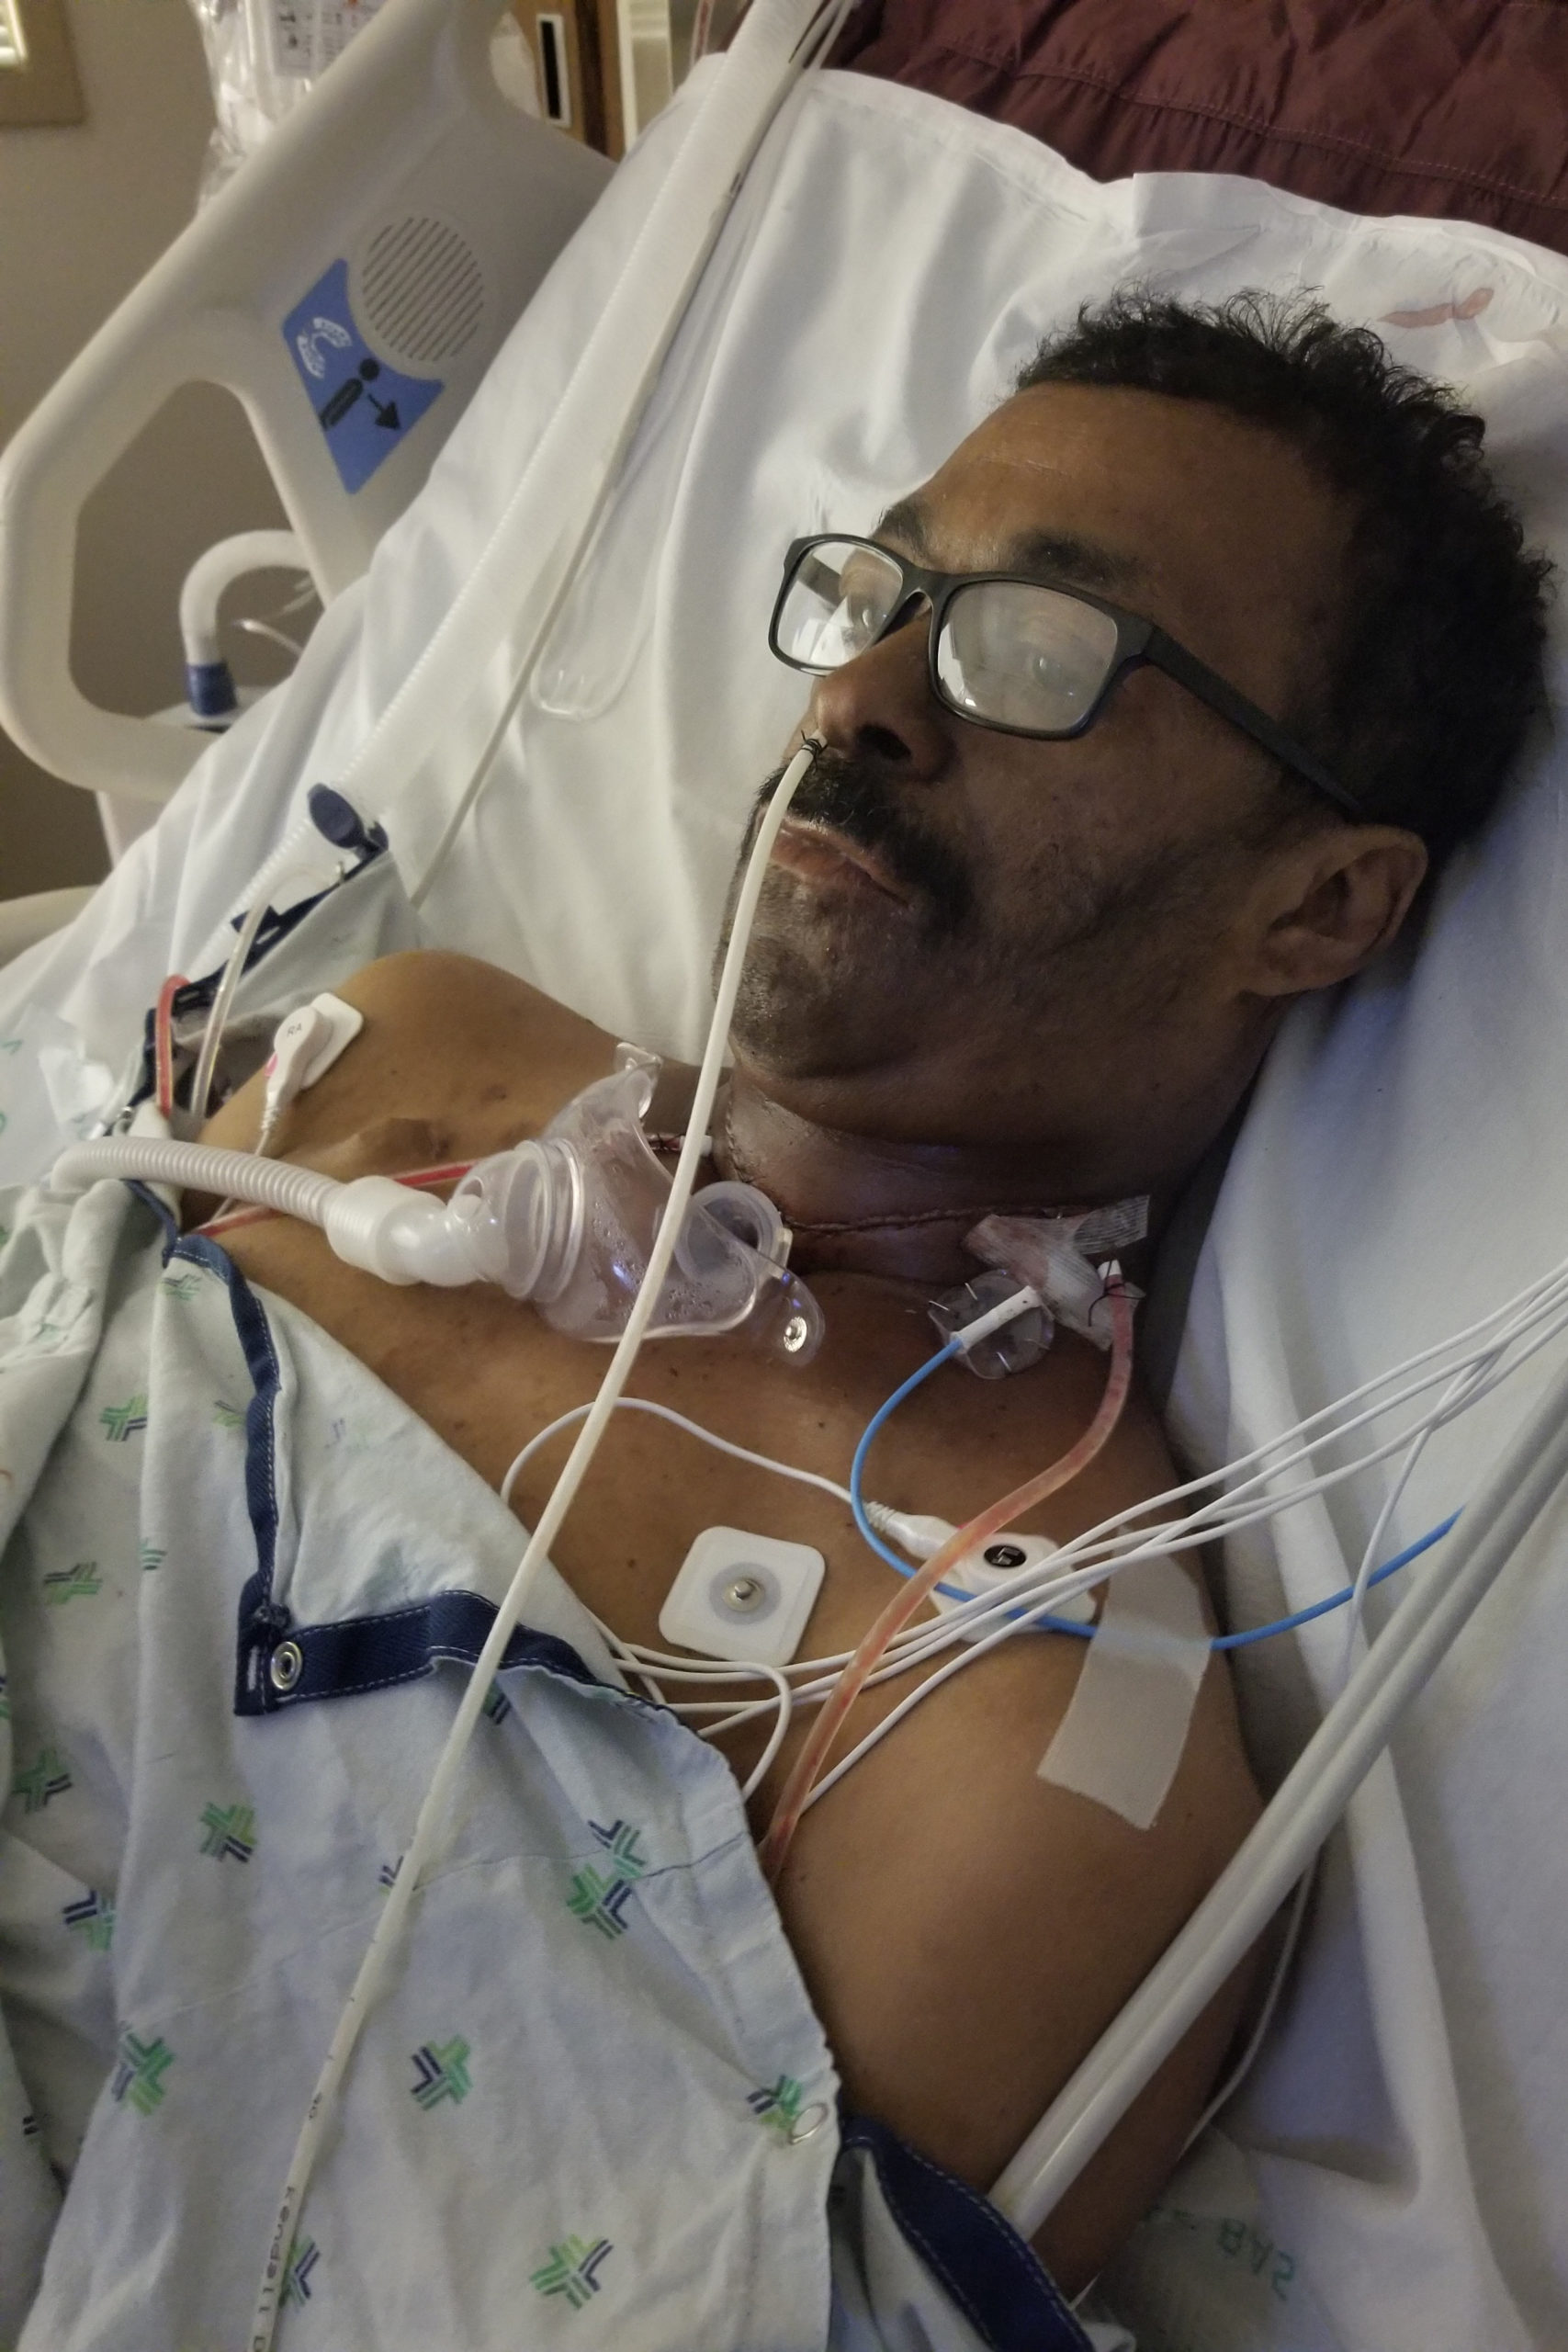 Eugene Stroud in his hospital bed during his cancer surgery